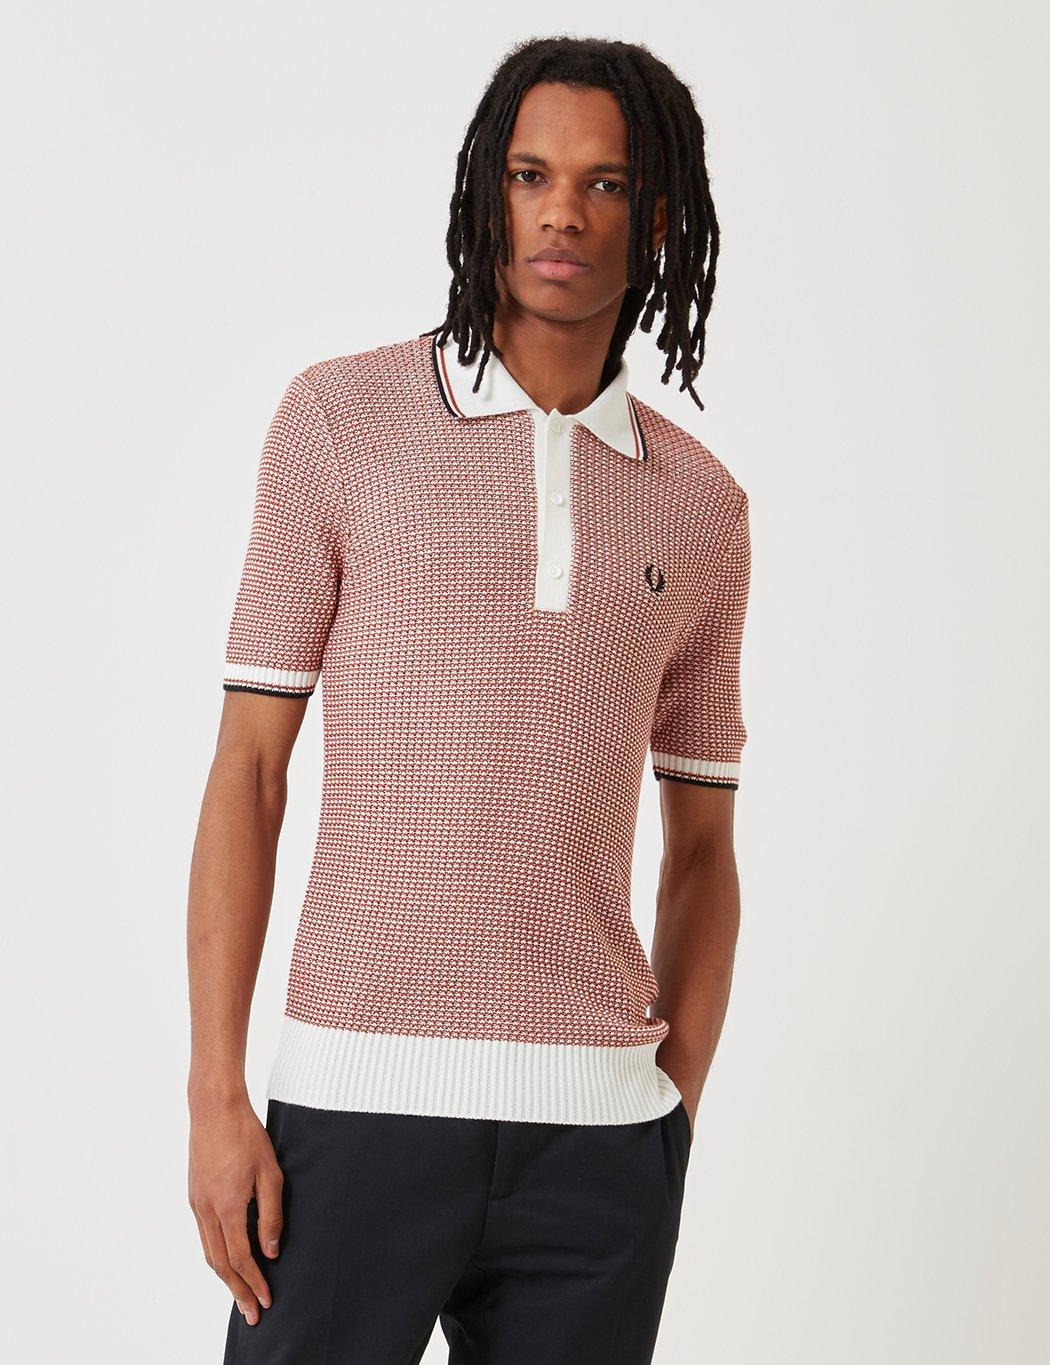 Fred Perry Re-issues Two Colour Texture Knit Shirt in ...